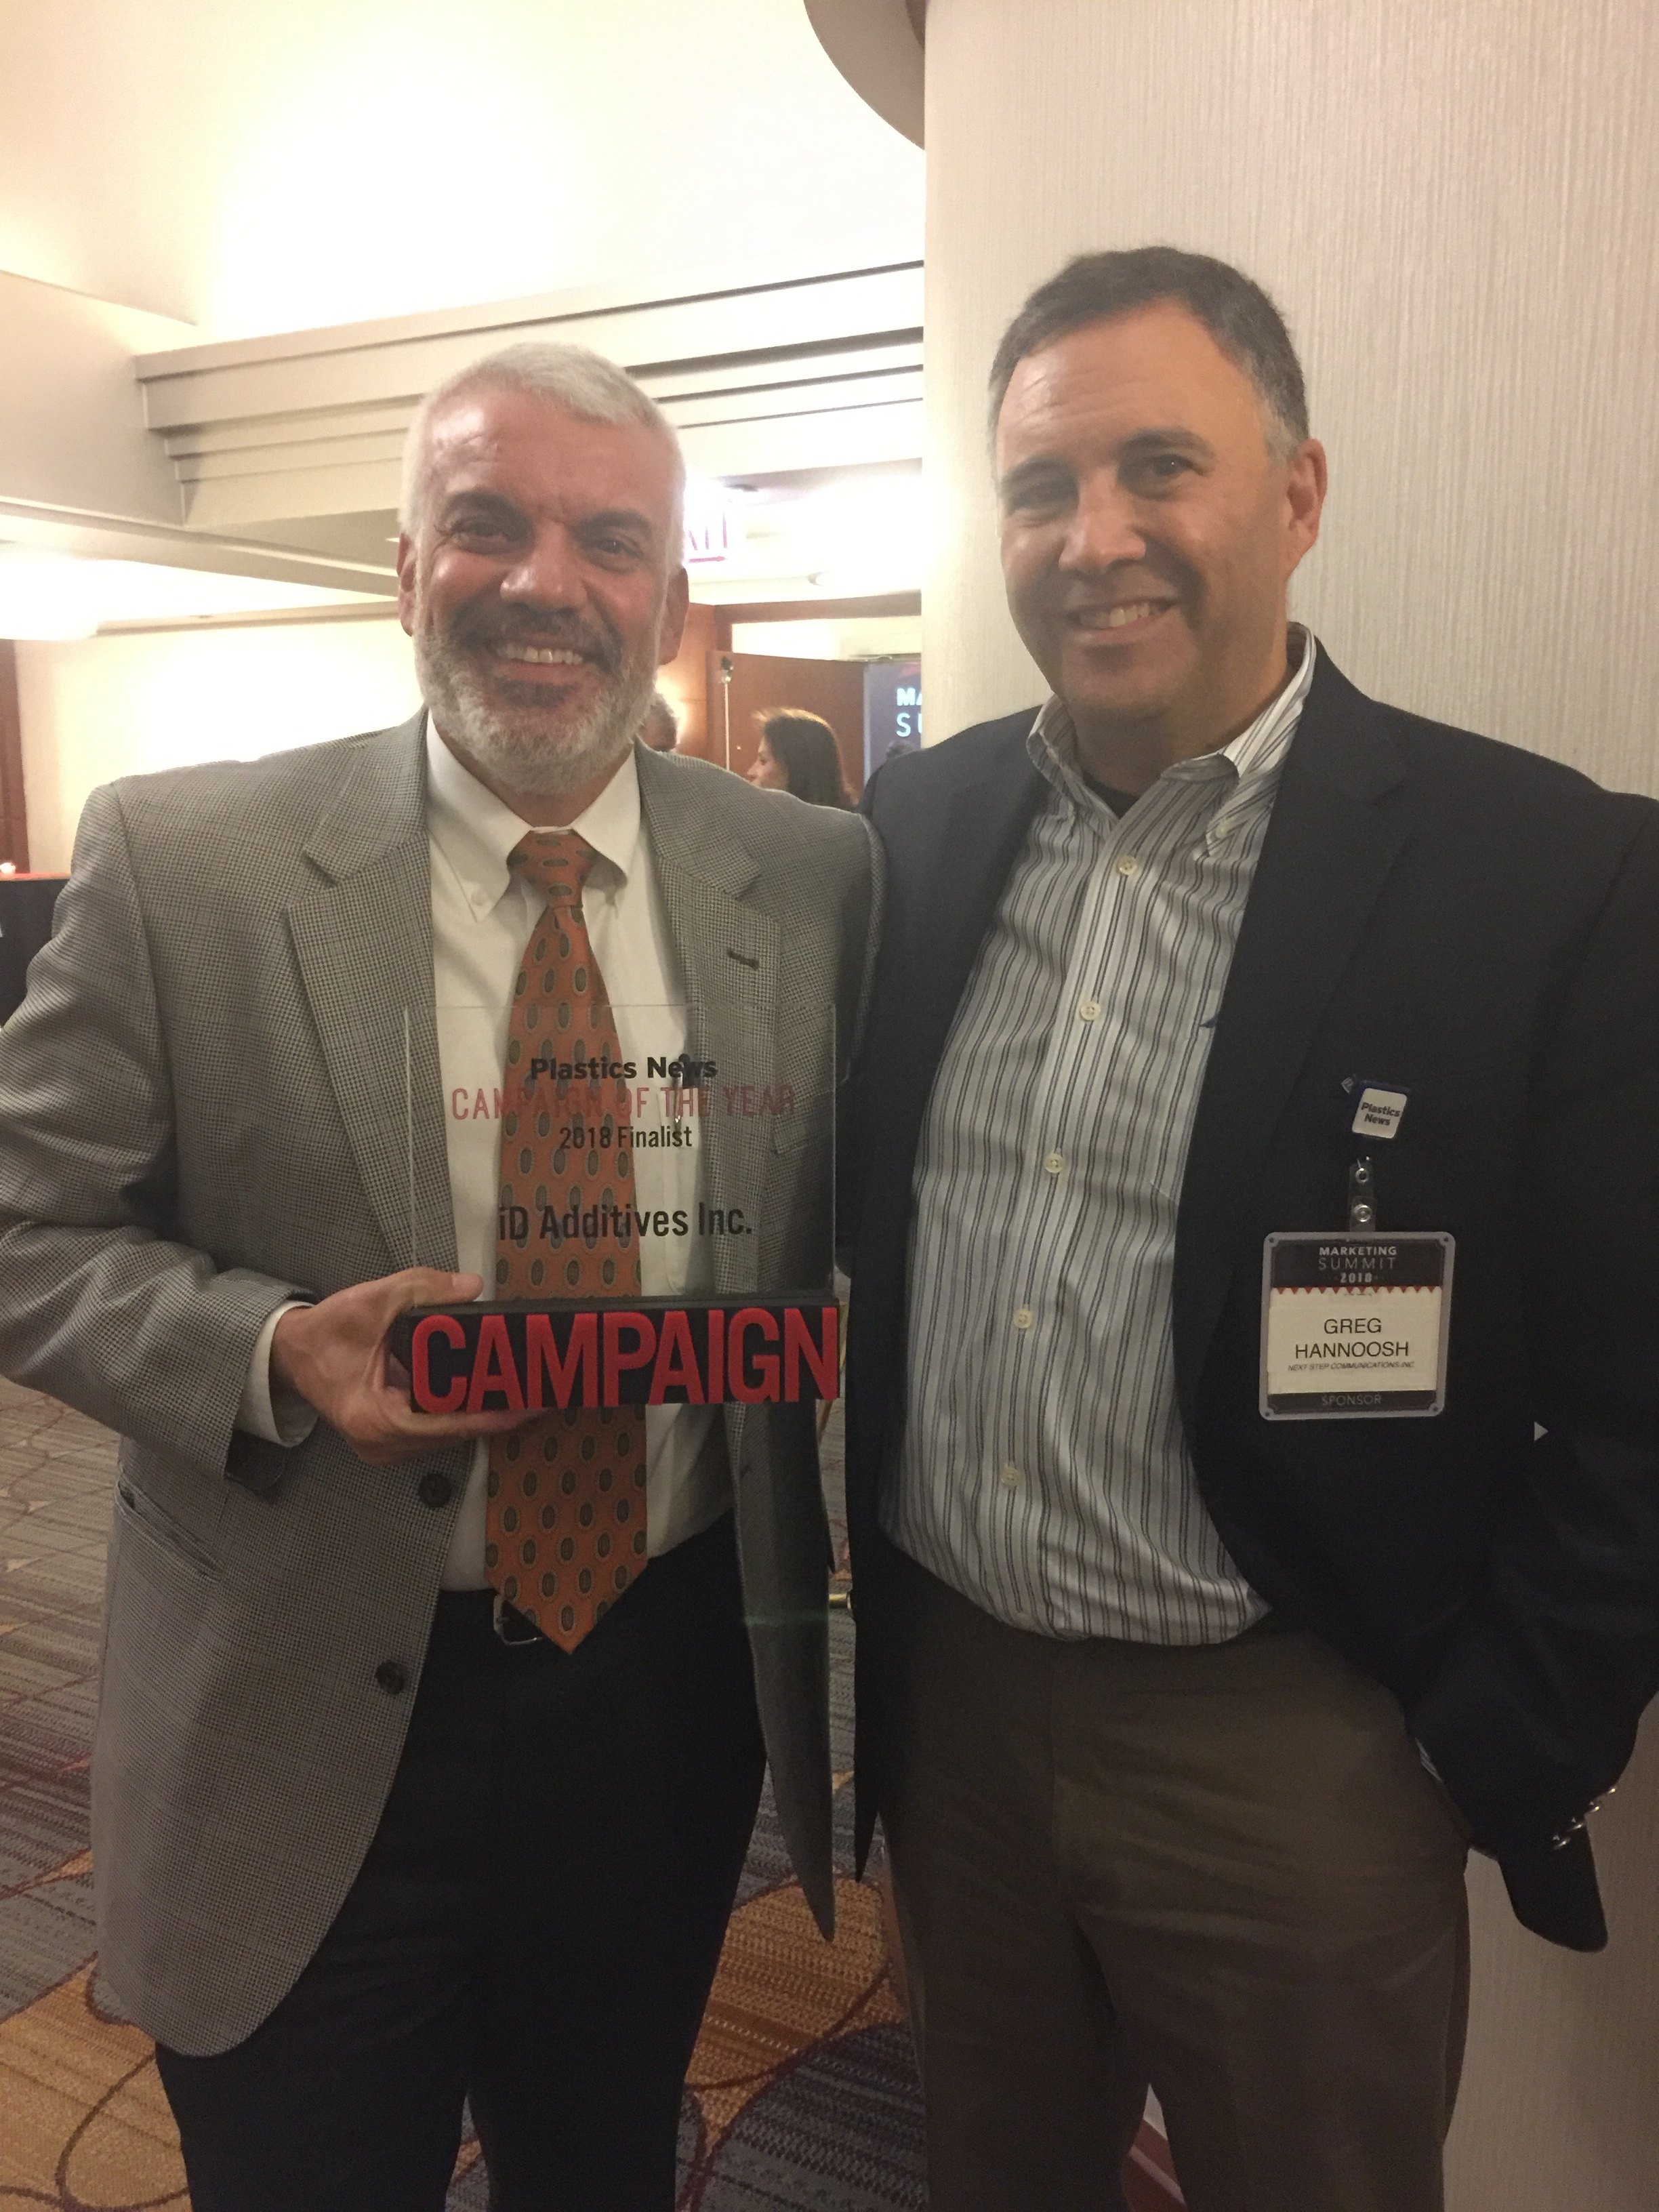 Nick Sotos (l), President of iD Additives, and Next Step President Greg Hannoosh at the 2018 Plastics News Marketing Summit